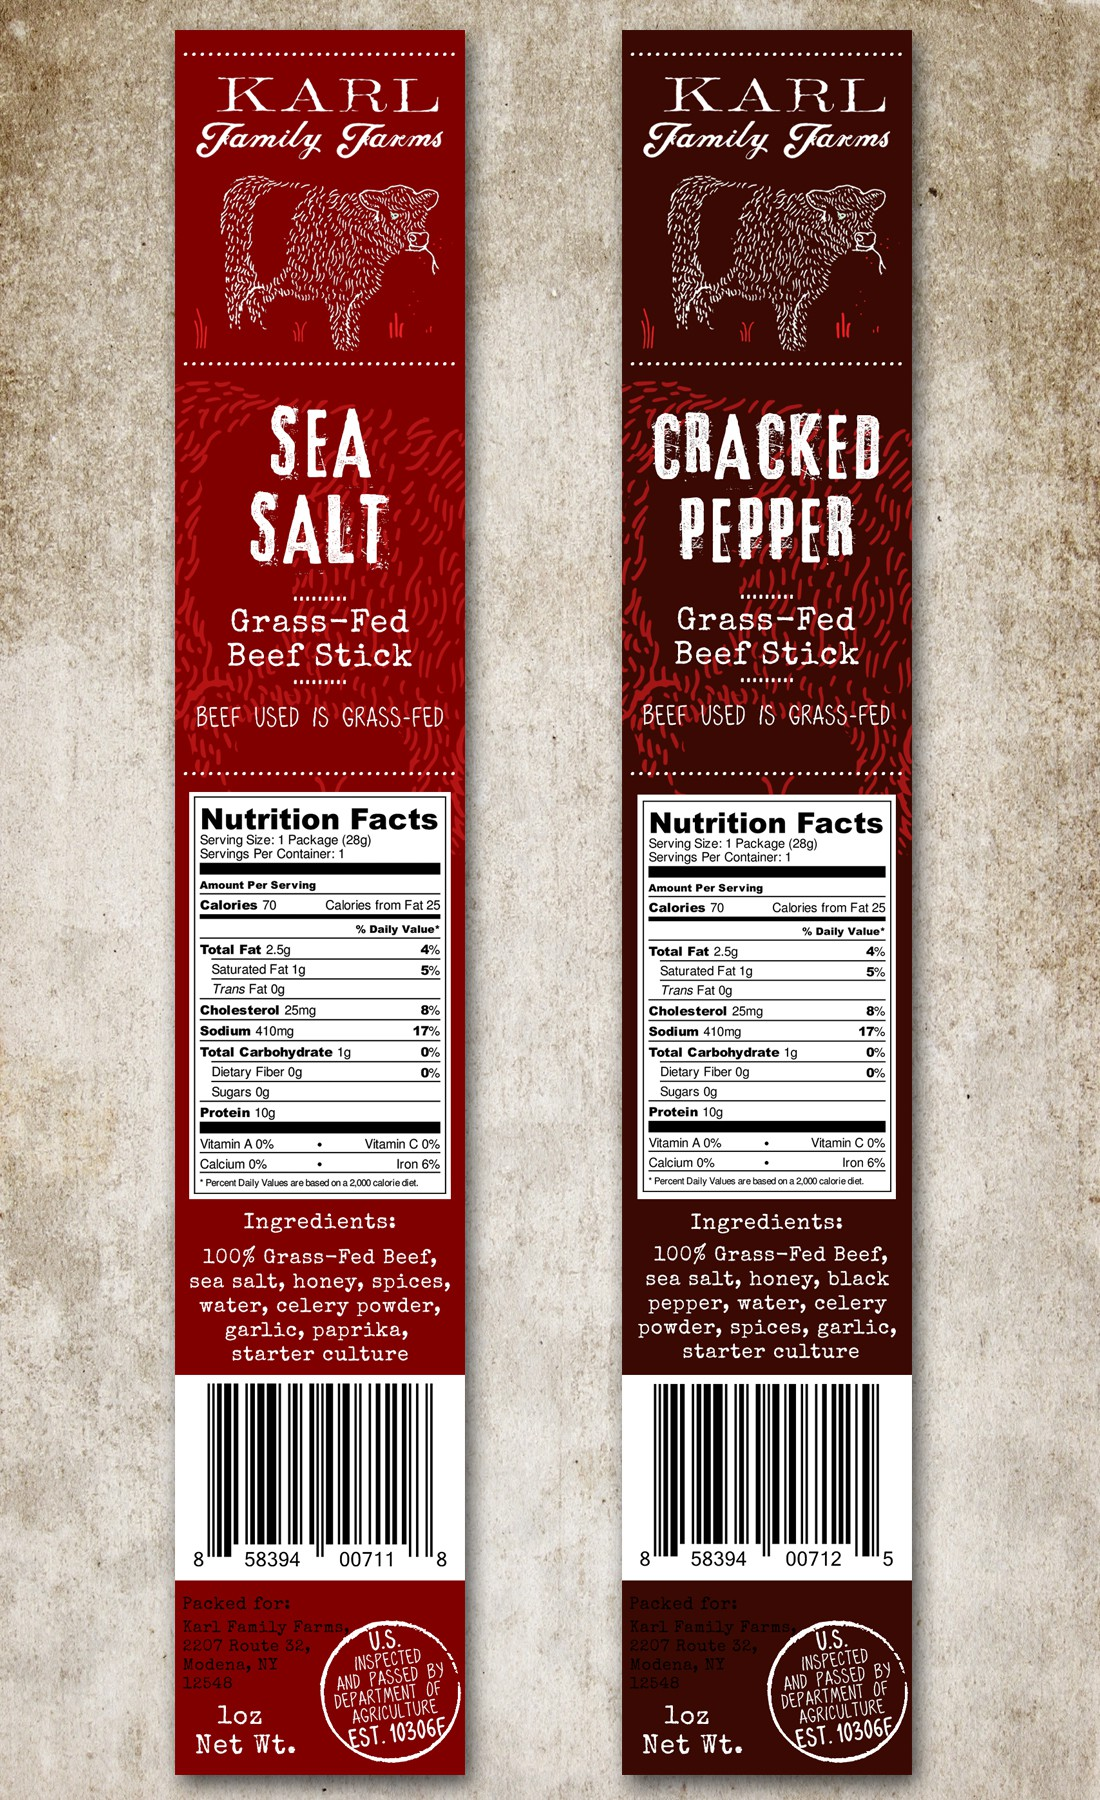 Grass-Fed Beef Stick label for new product line